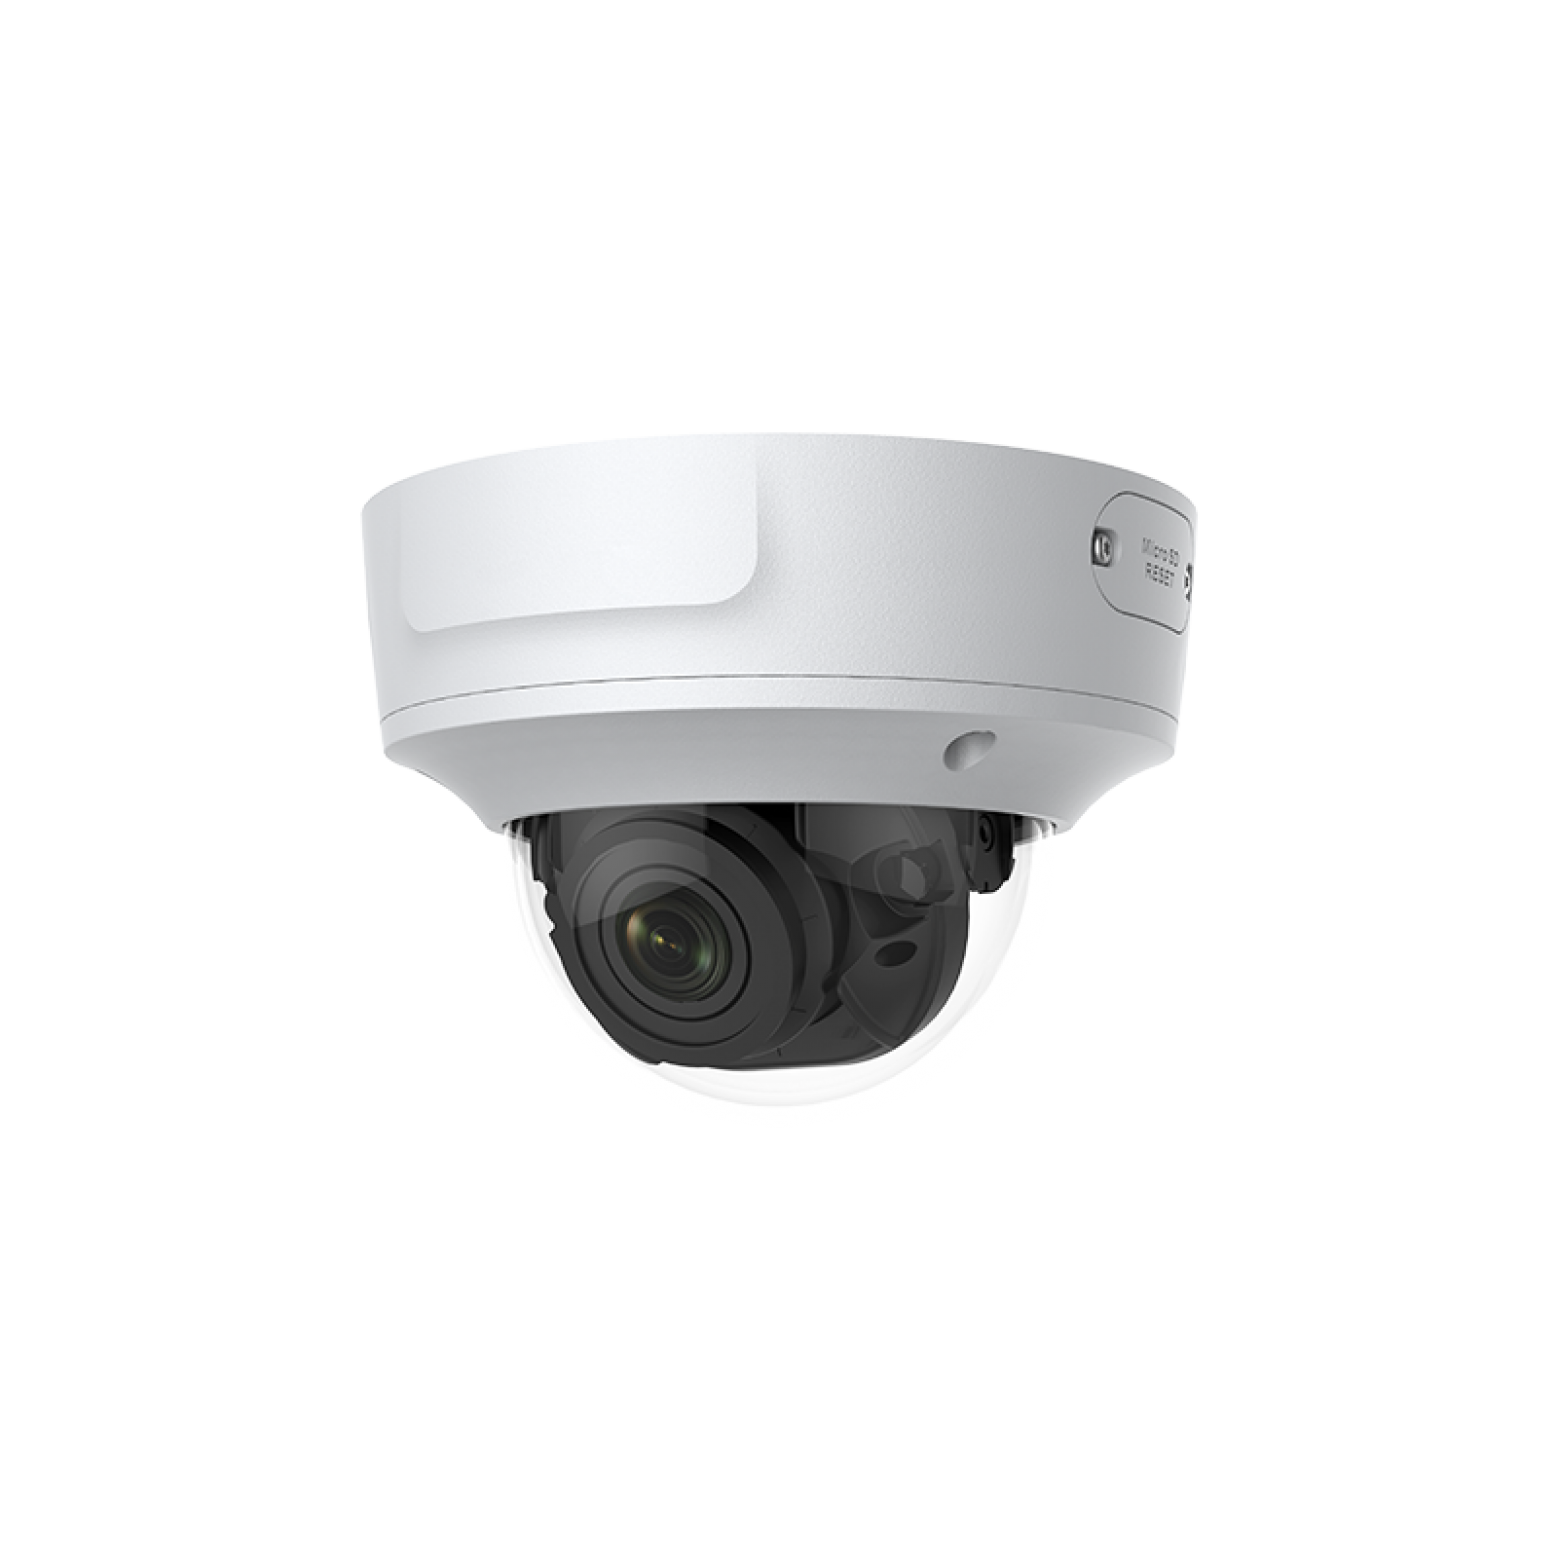 Safire SF-IPDM825ZWH-4-AI, 4 Megapixel, 2.8~12mm motorzoom, Dome Camera